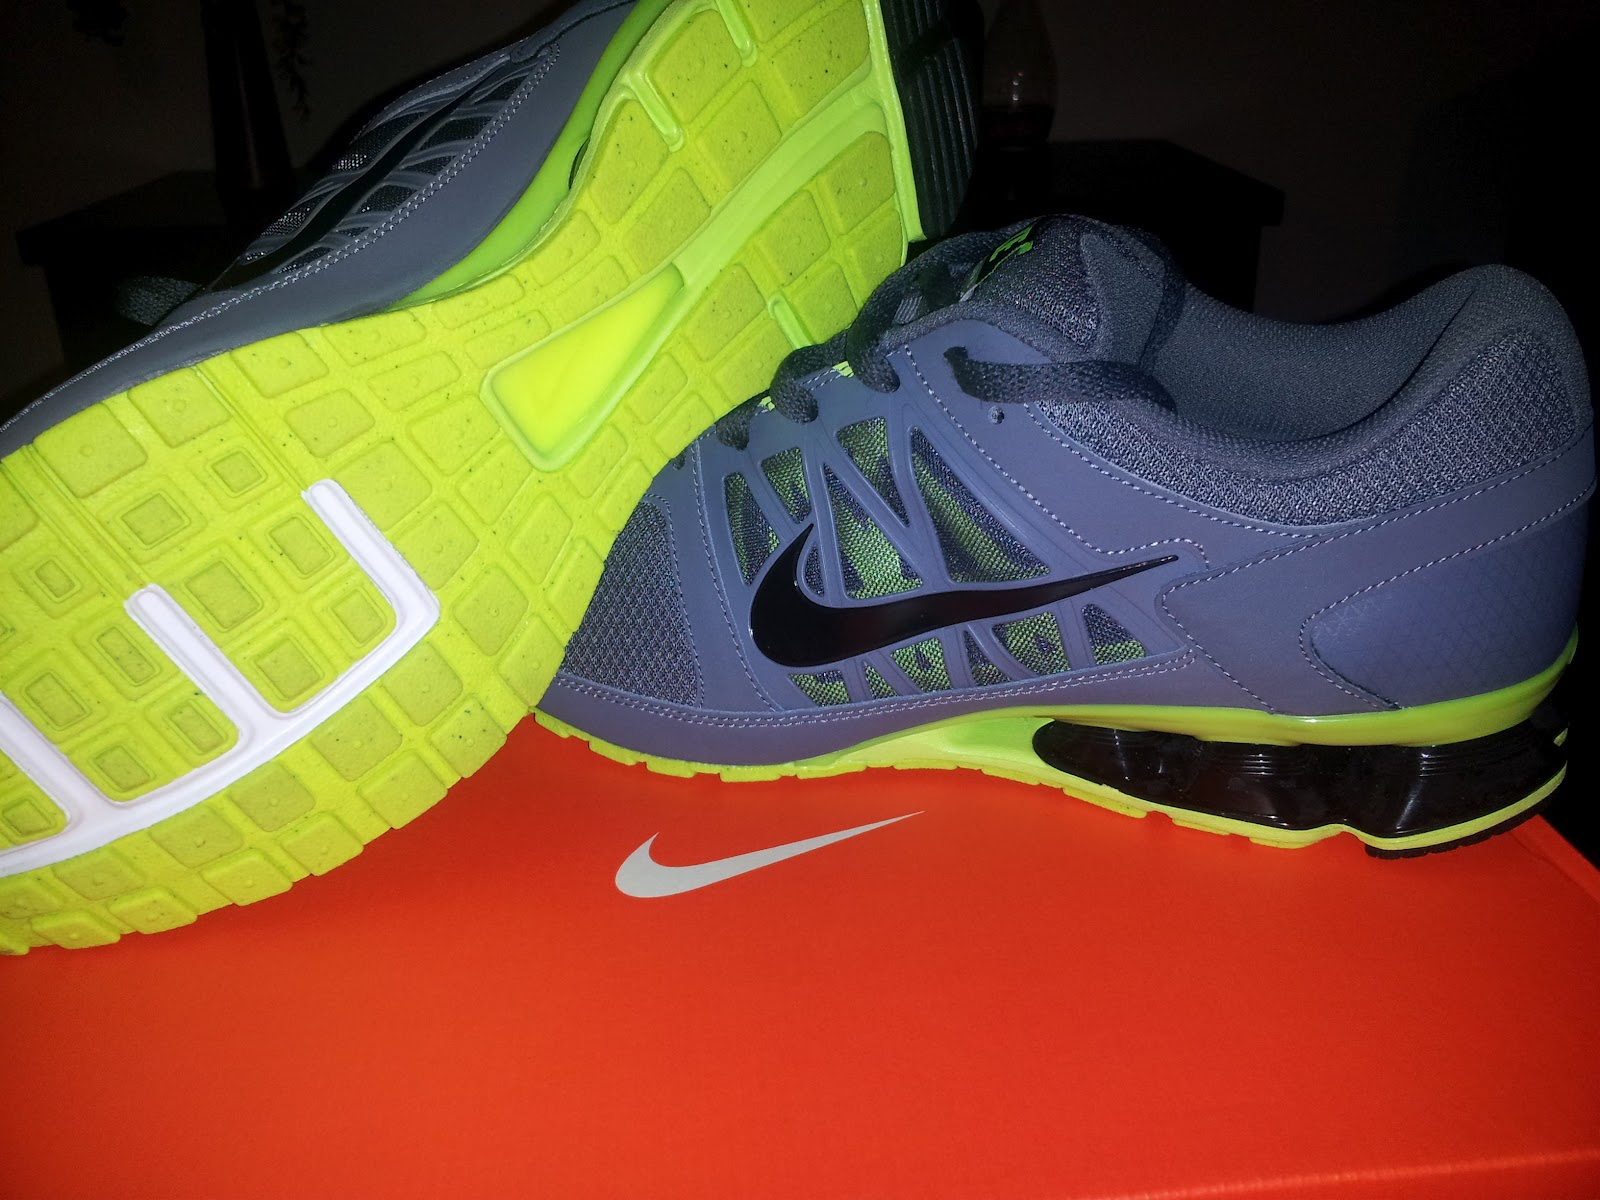 NIKE REAX RUN 6 review. In my previous post I told you about my new running  shoe purchase, Well here is the review.